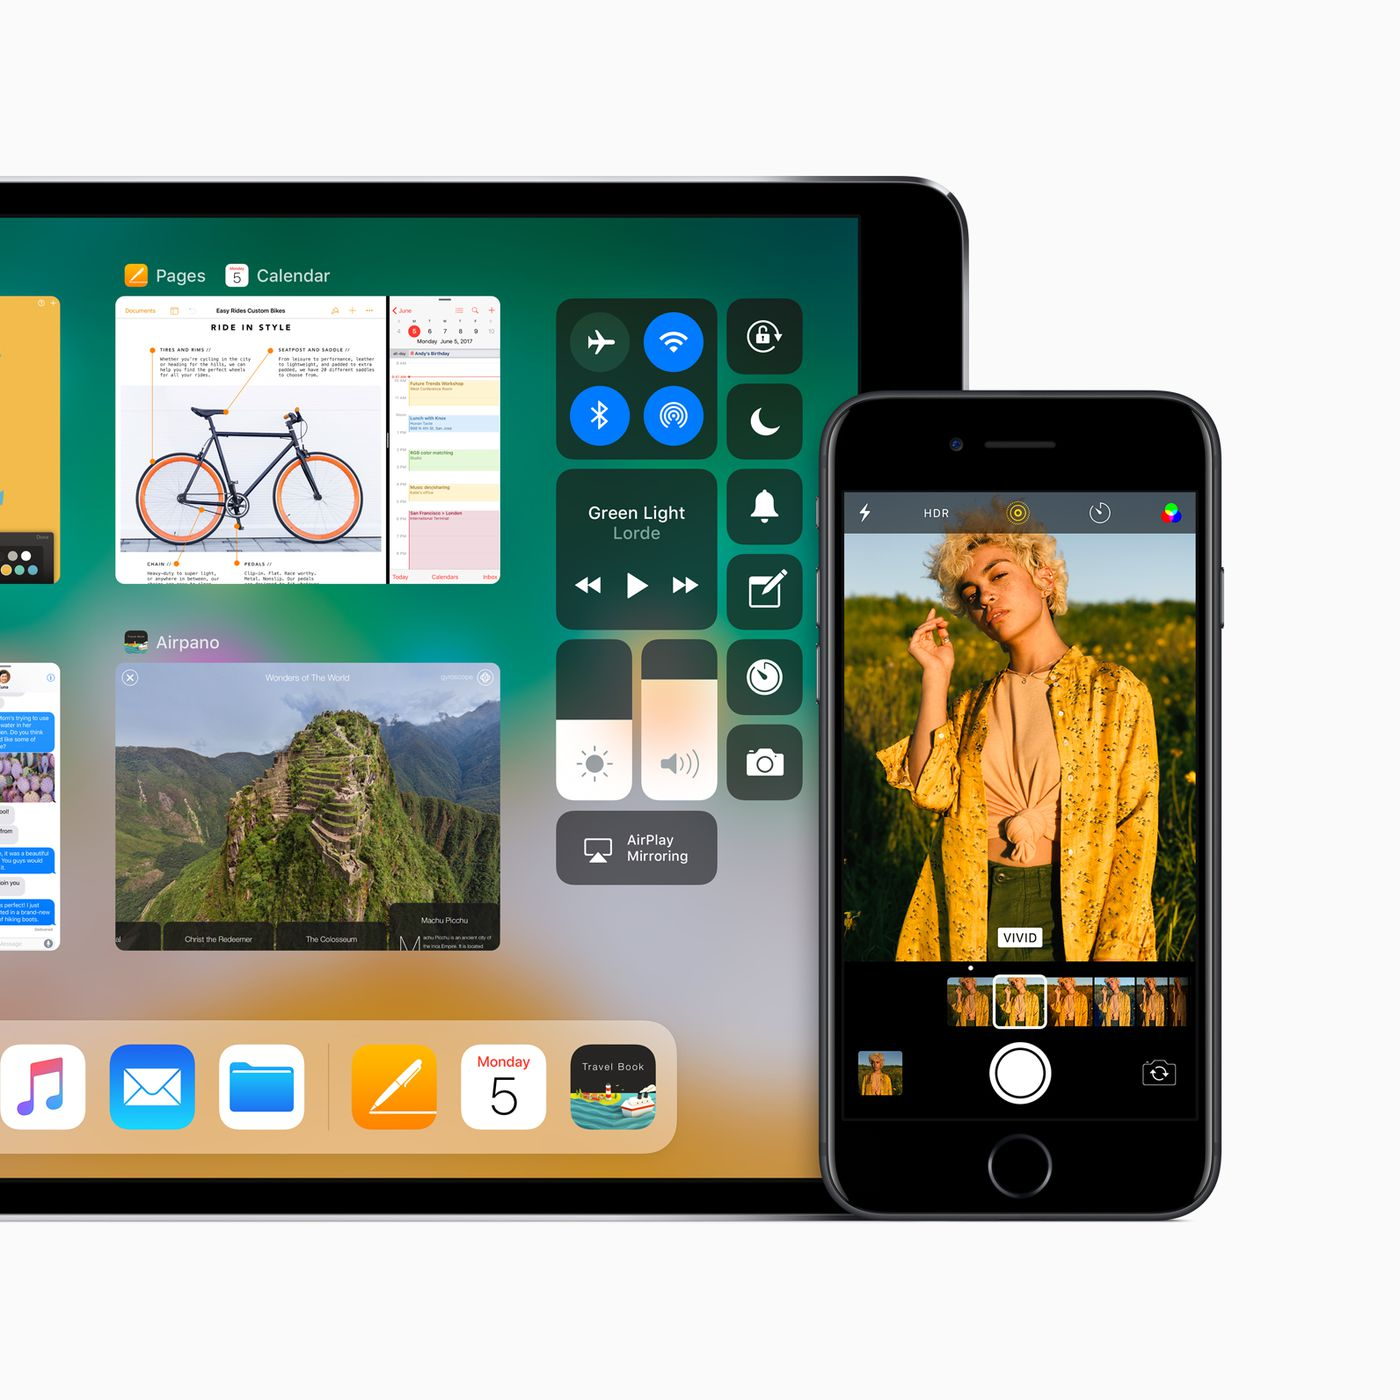 Apple's iOS 11 will make it harder to log into apps using